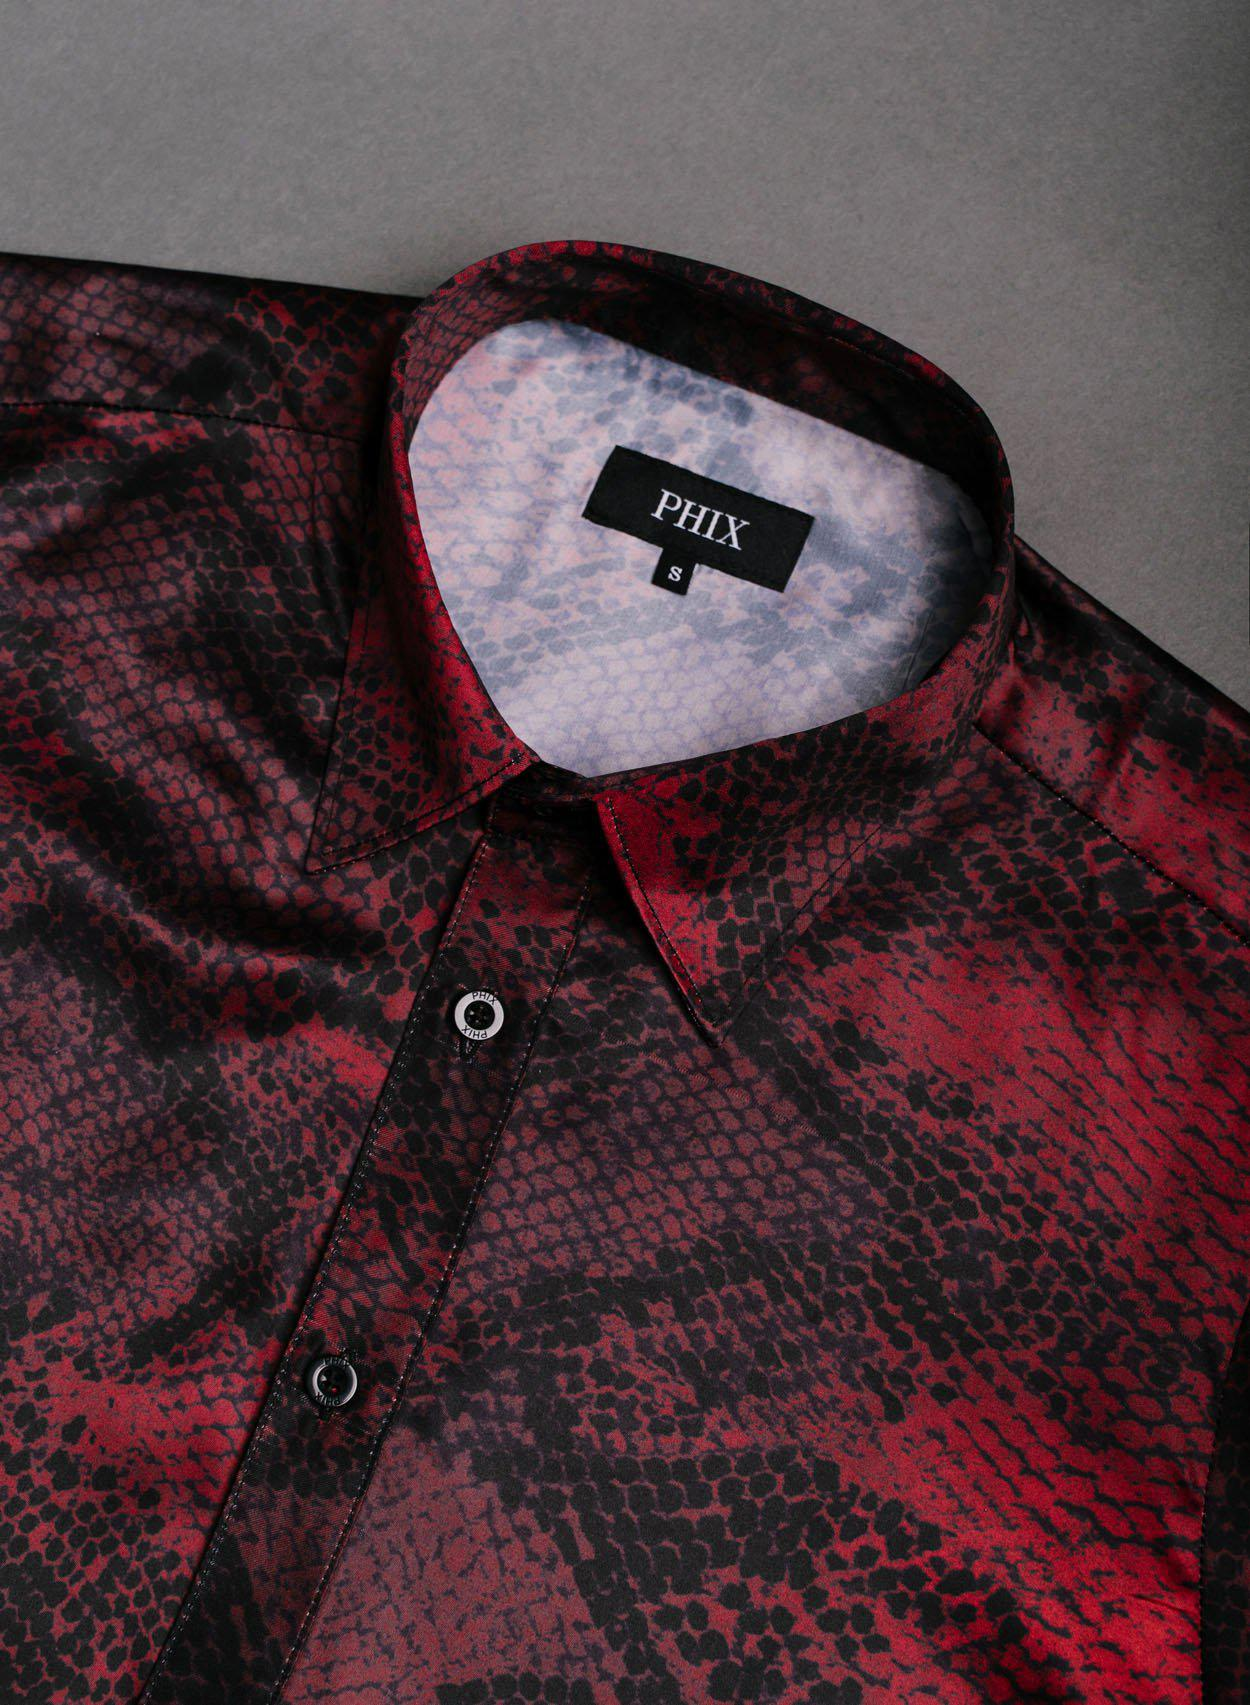 Red Satin Snake Print Shirt-PhixClothing.com